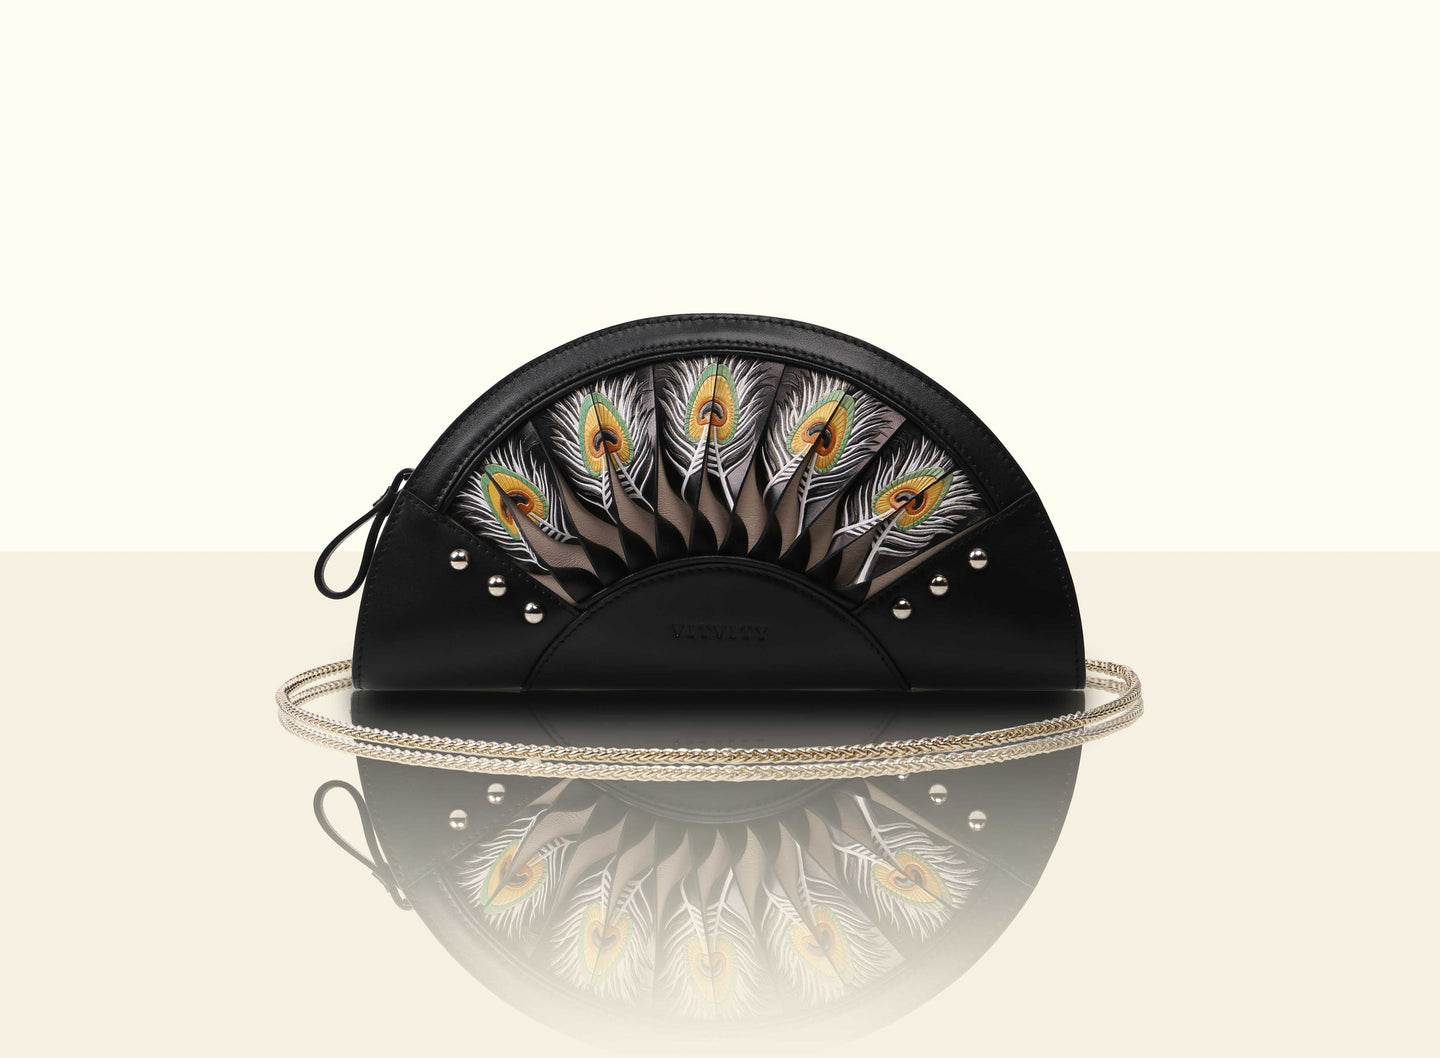 Preorder - Exquisite Fan Clutch - Black